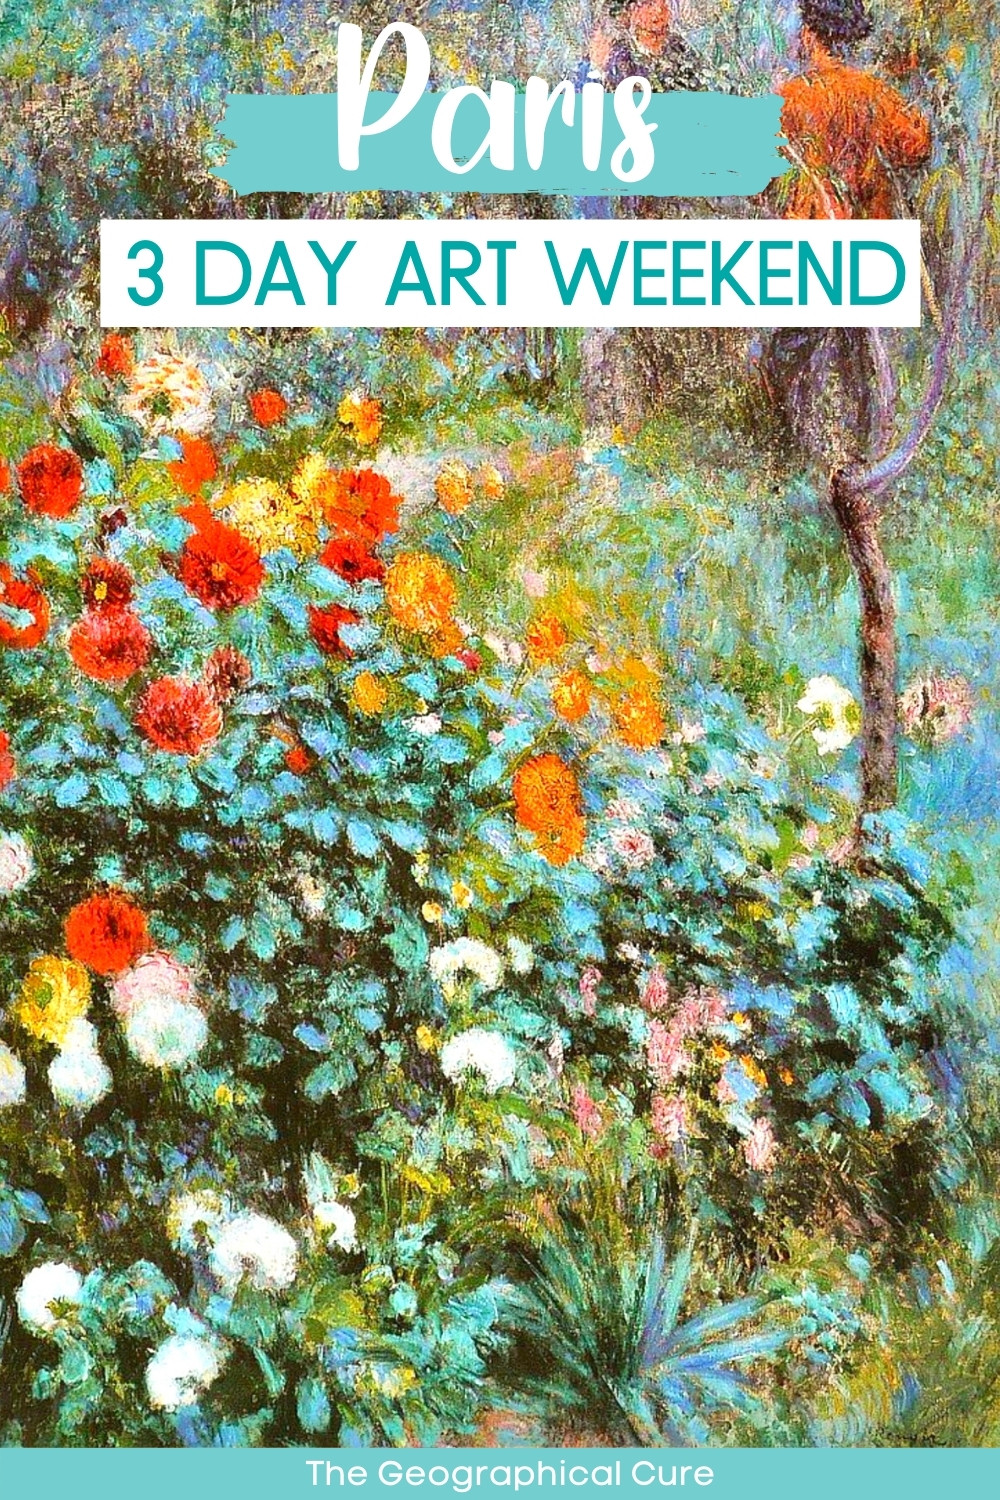 3 Day Itinerary for an Art Weekend in Paris